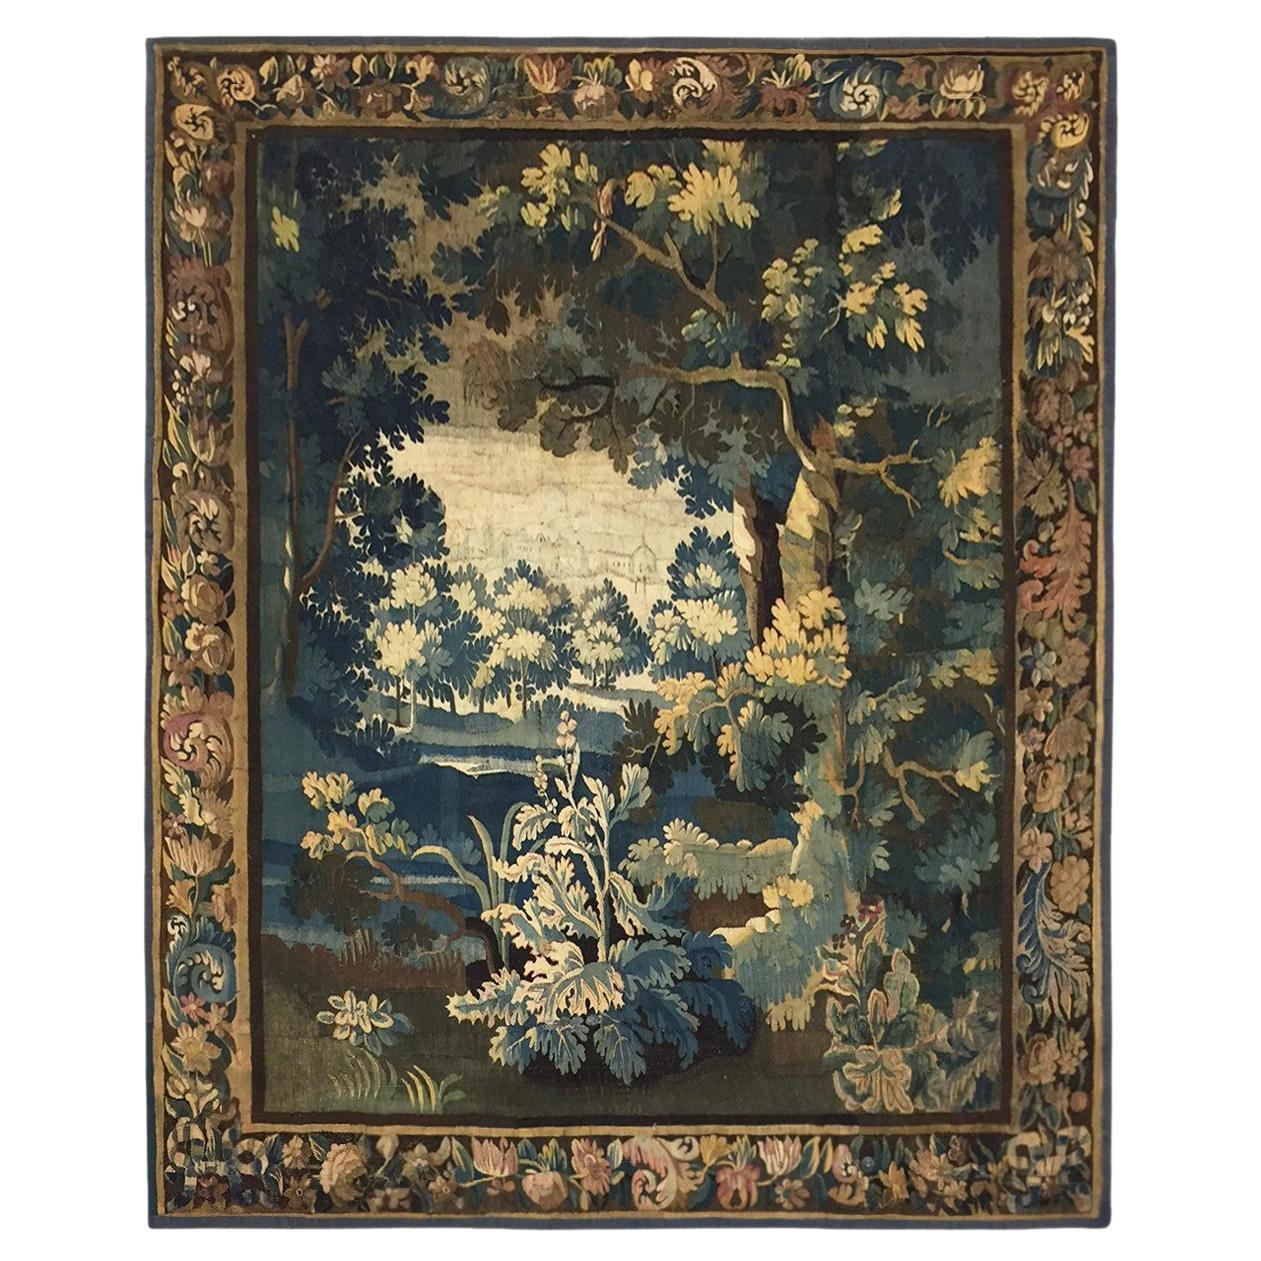 Antique 18th Century Flemish Verdure Landscape Tapestry with Lush Forest Setting